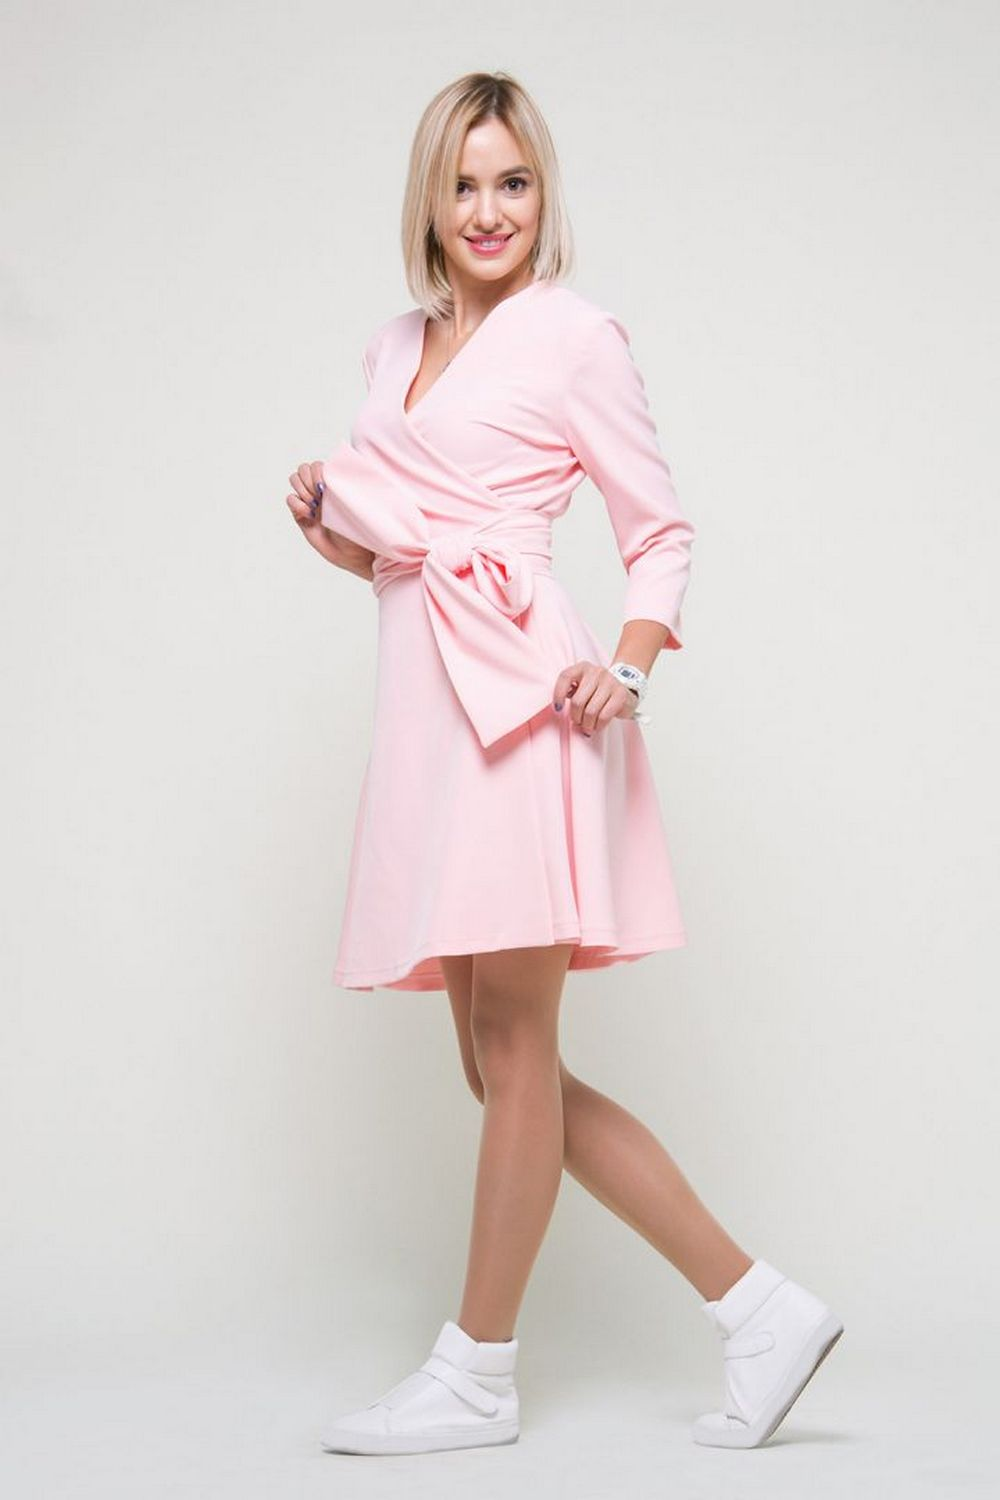 Buy Women`s pink dress, Long sleeve comfortable dress, V neck dress with pockets